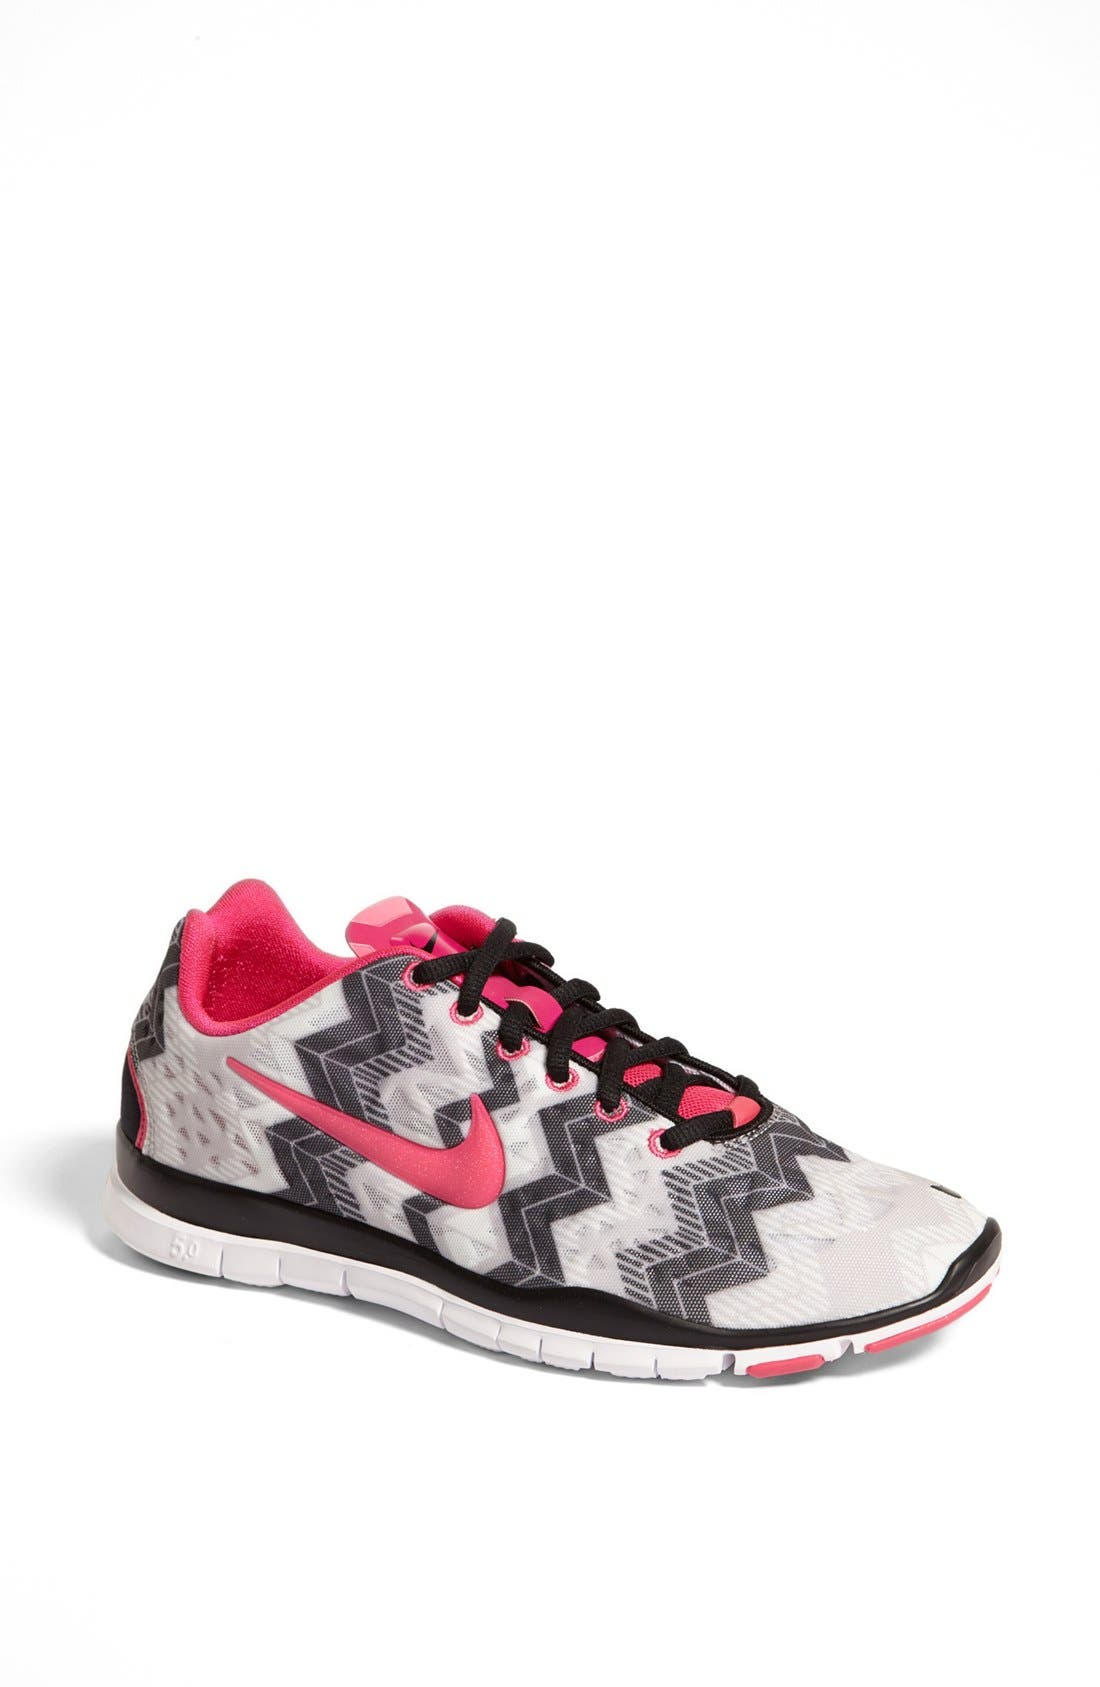 'Free TR Fit 3 Print' Training Shoe,                             Main thumbnail 1, color,                             Grey/ Black/ Pink Foil